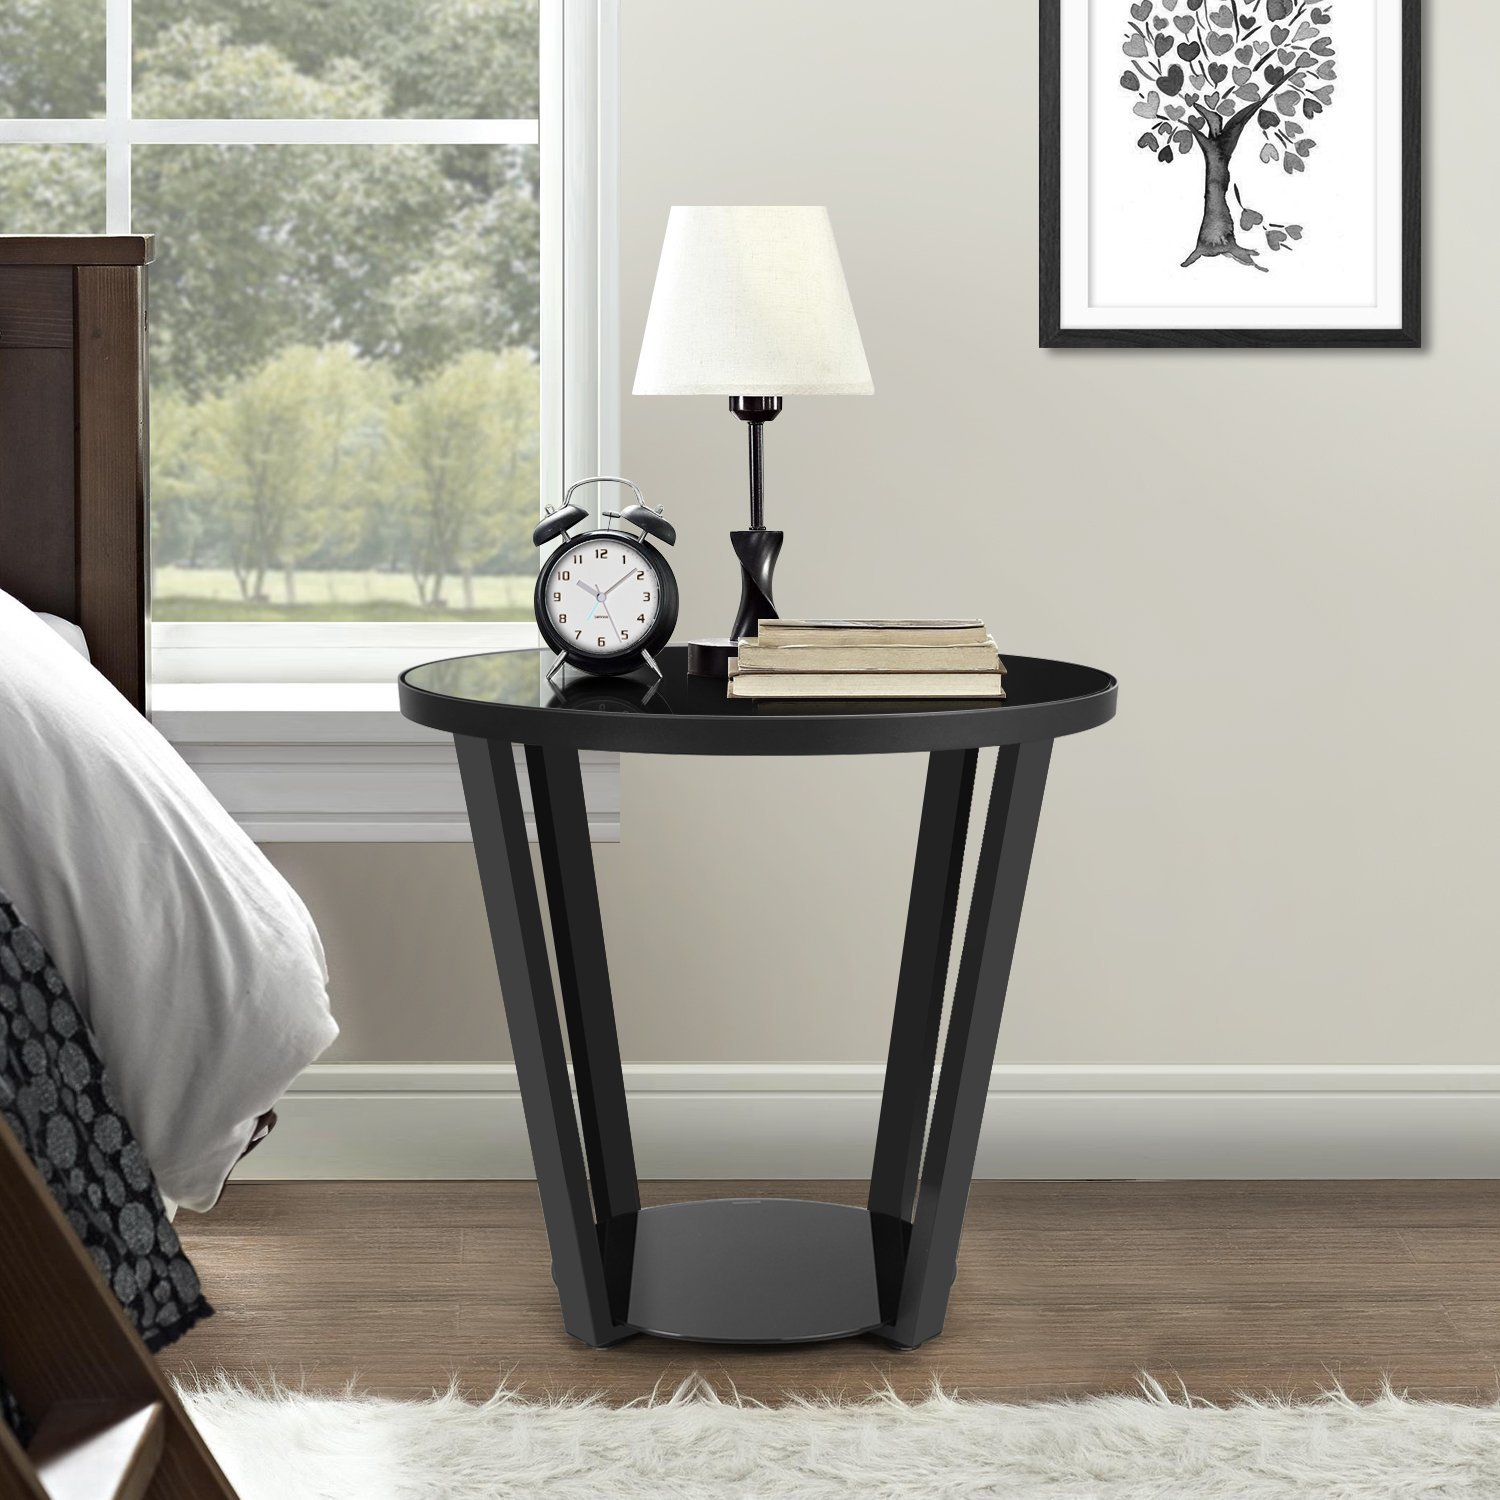 top superb pedestal accent table gold bedside tall round side end tables coffee with design twin over full vintage ethan allen dresser outdoor stool lamps for bedroom queen anne